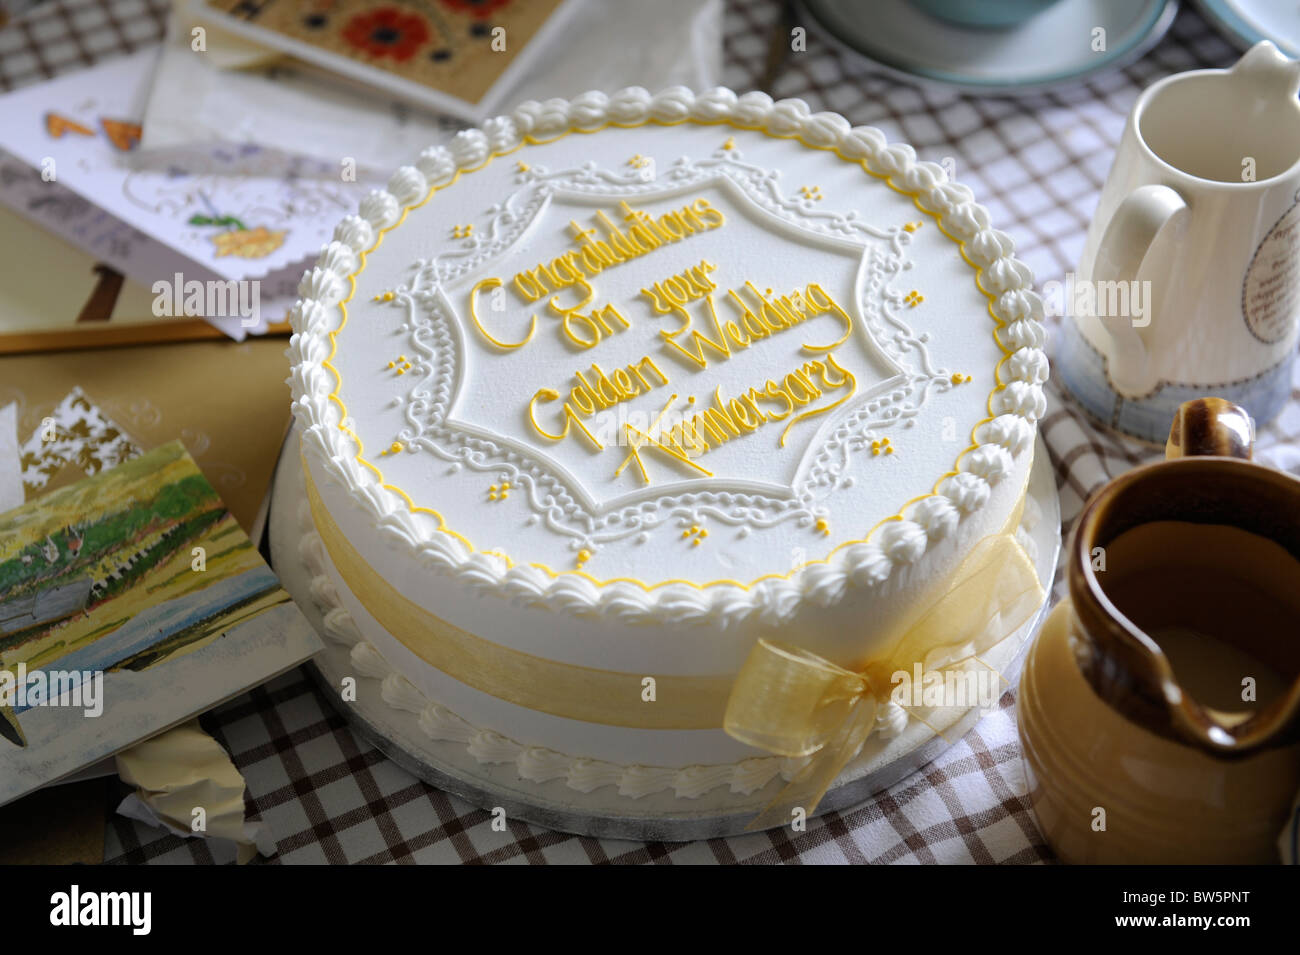 golden wedding cake to celebrate 50 years of marriage stock photo